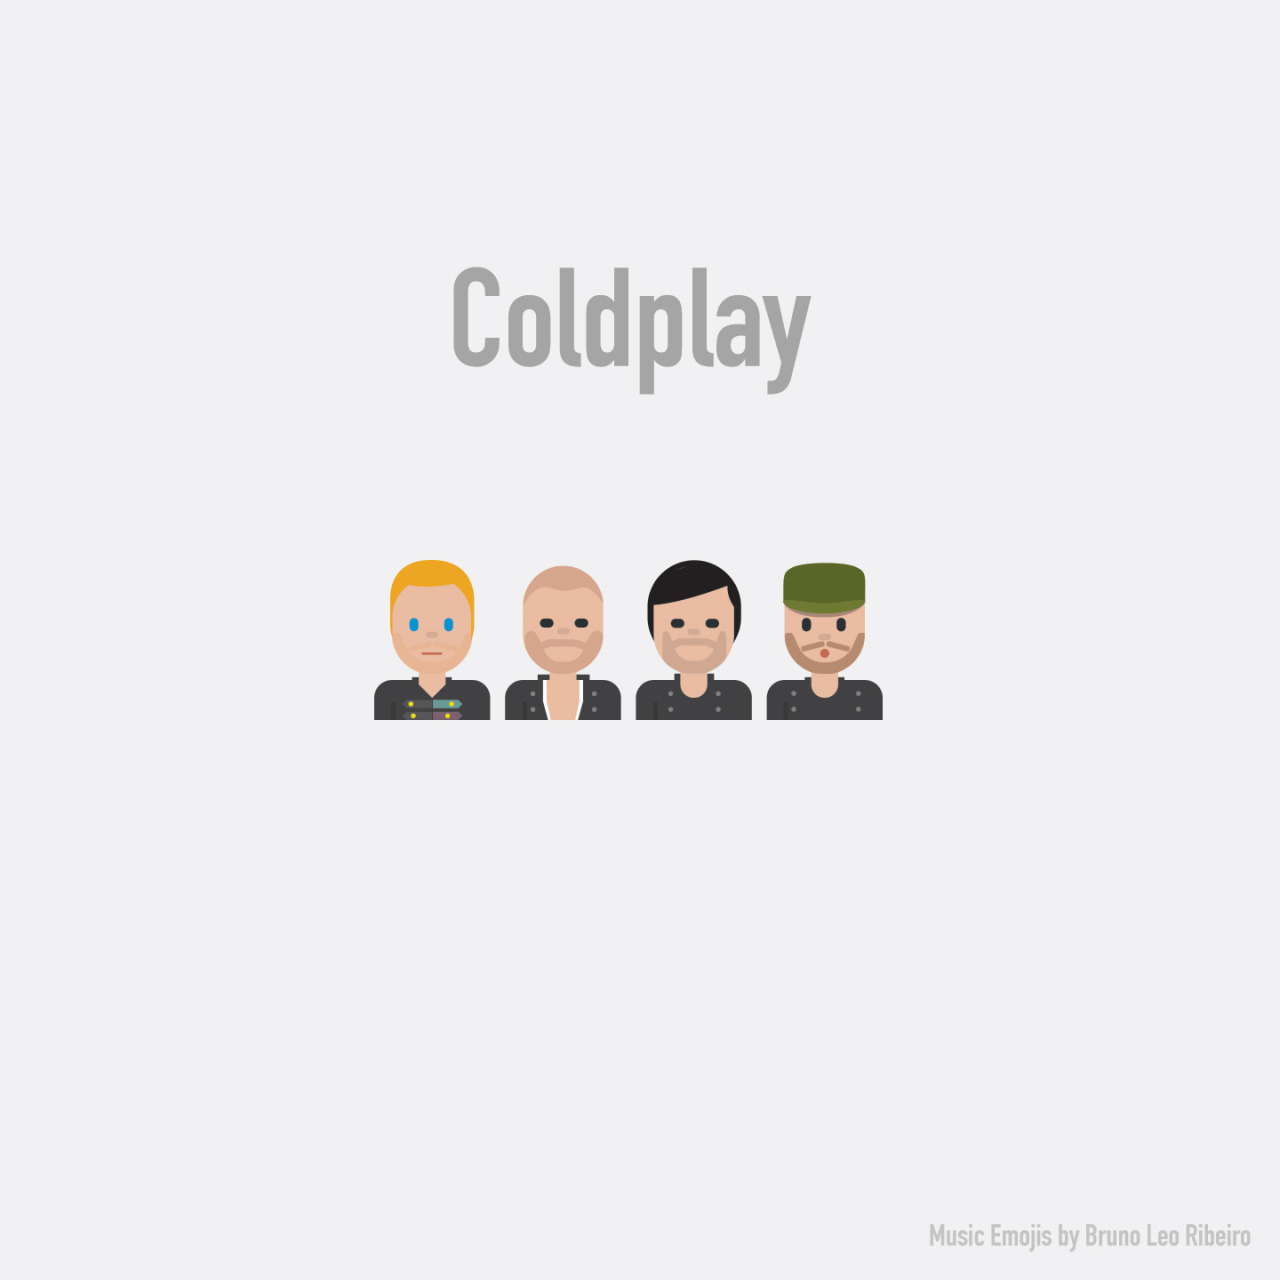 Coldplay emoji